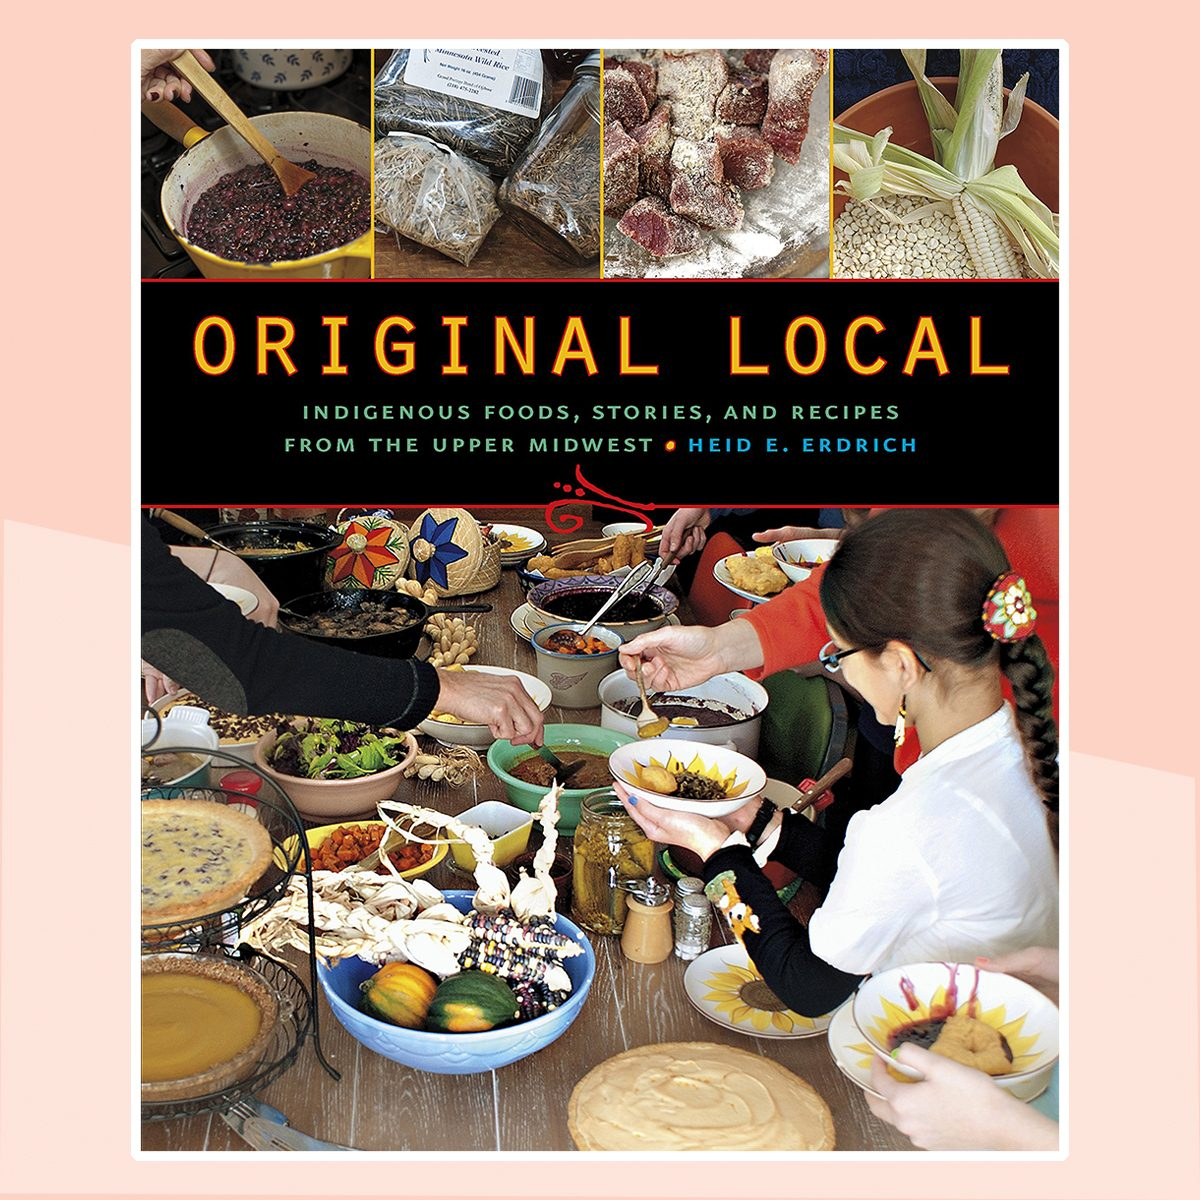 Original Local:Indigenous Foods, Stories, and Recipes from the Upper Midwest